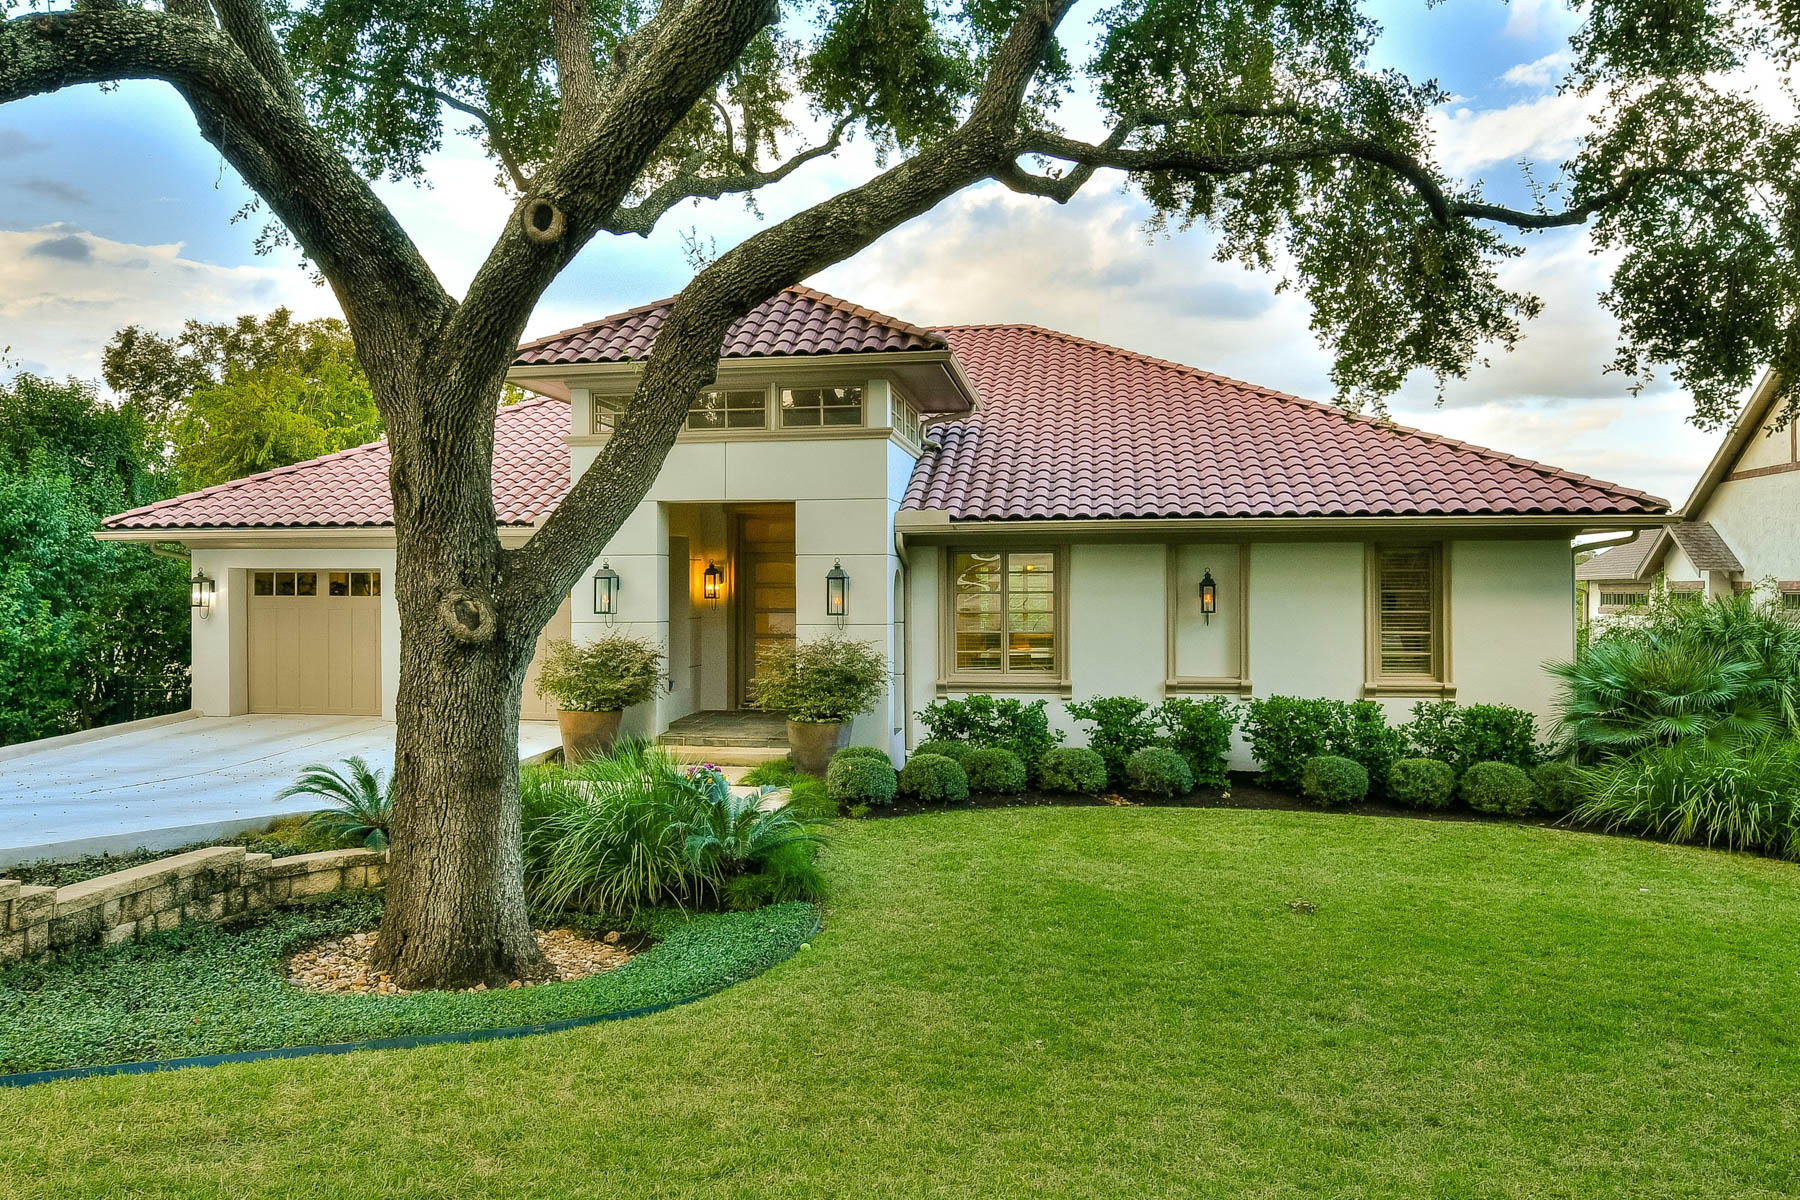 獨棟家庭住宅 為 出售 在 Meticulously Cared for Home in Terrell Hills 723 Elizabeth Rd San Antonio, 德克薩斯州, 78209 美國